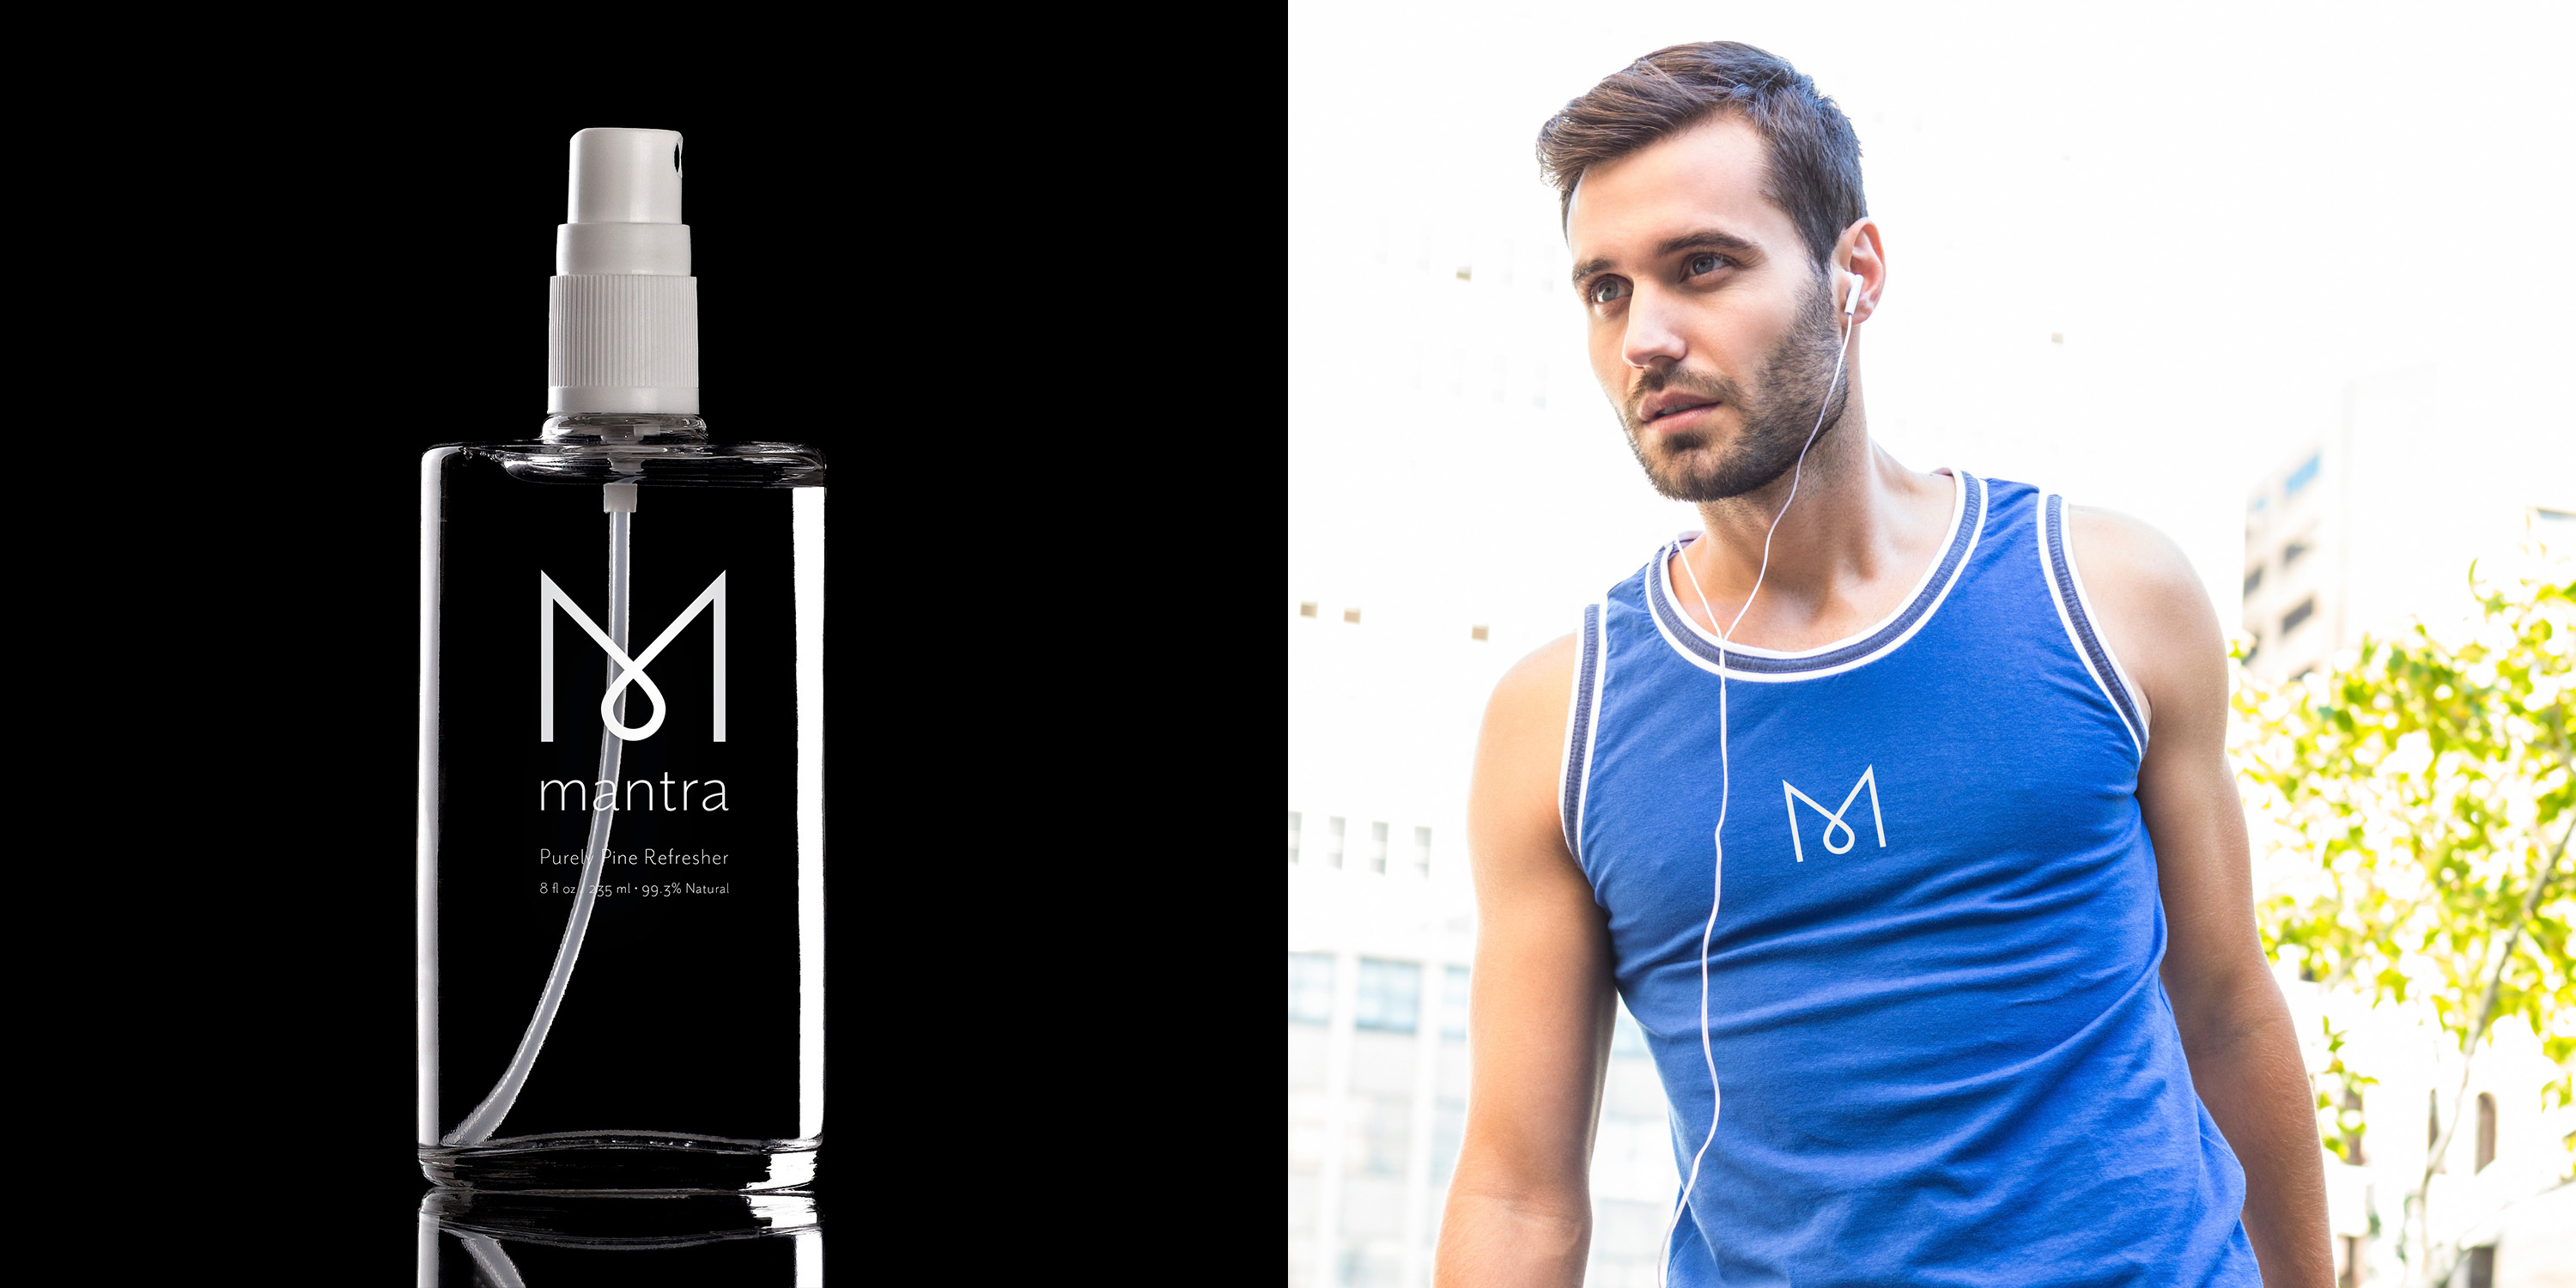 Brian Behm Design - Mantra Brand Application